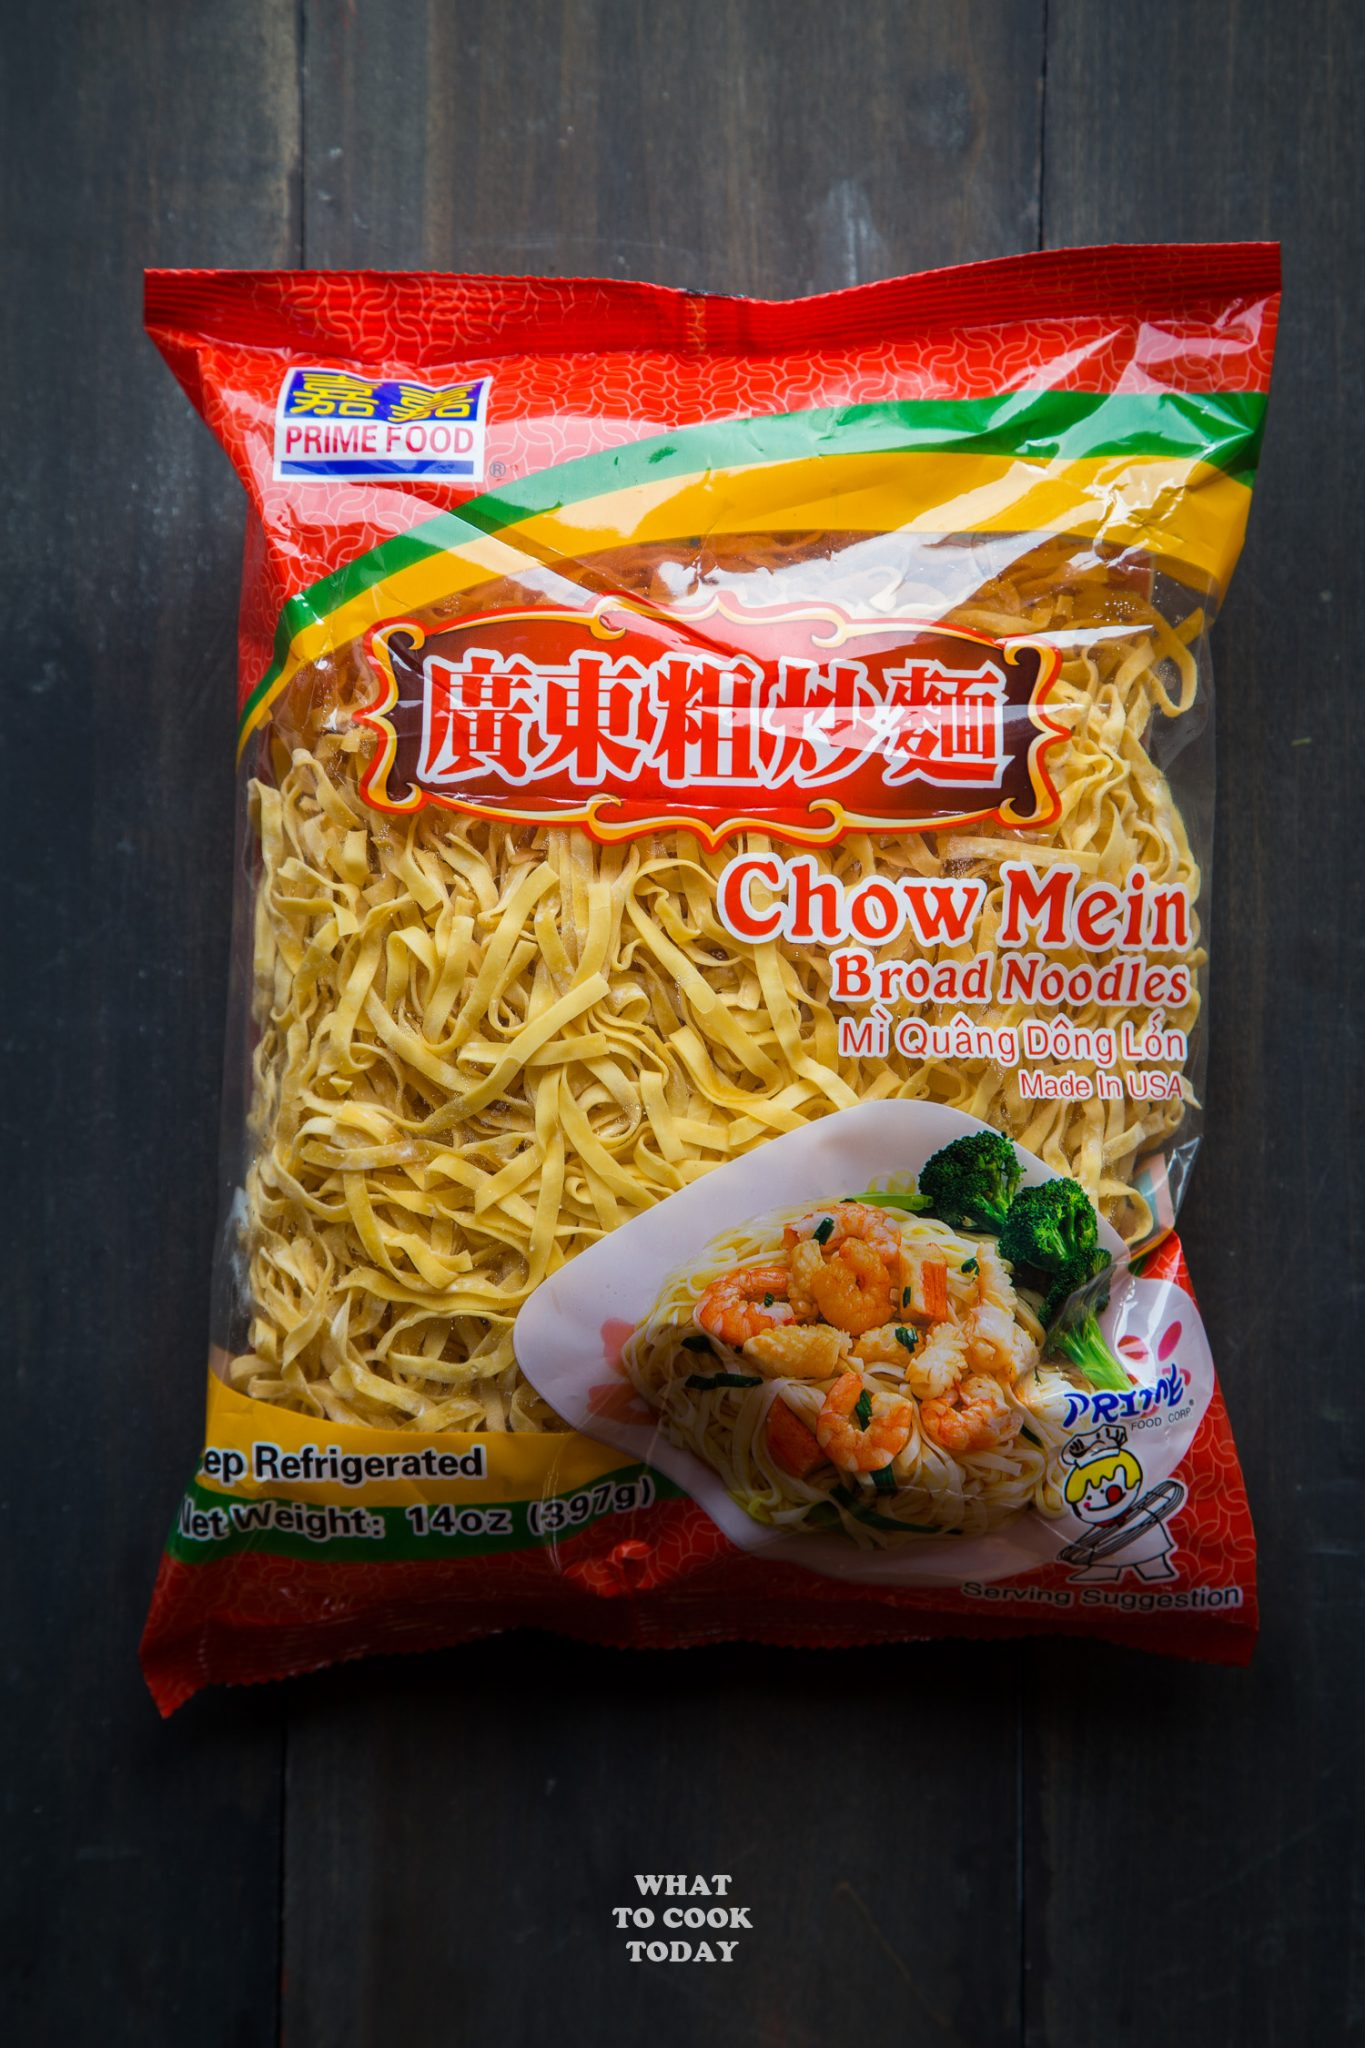 Prime Food Chow Mein Noodles